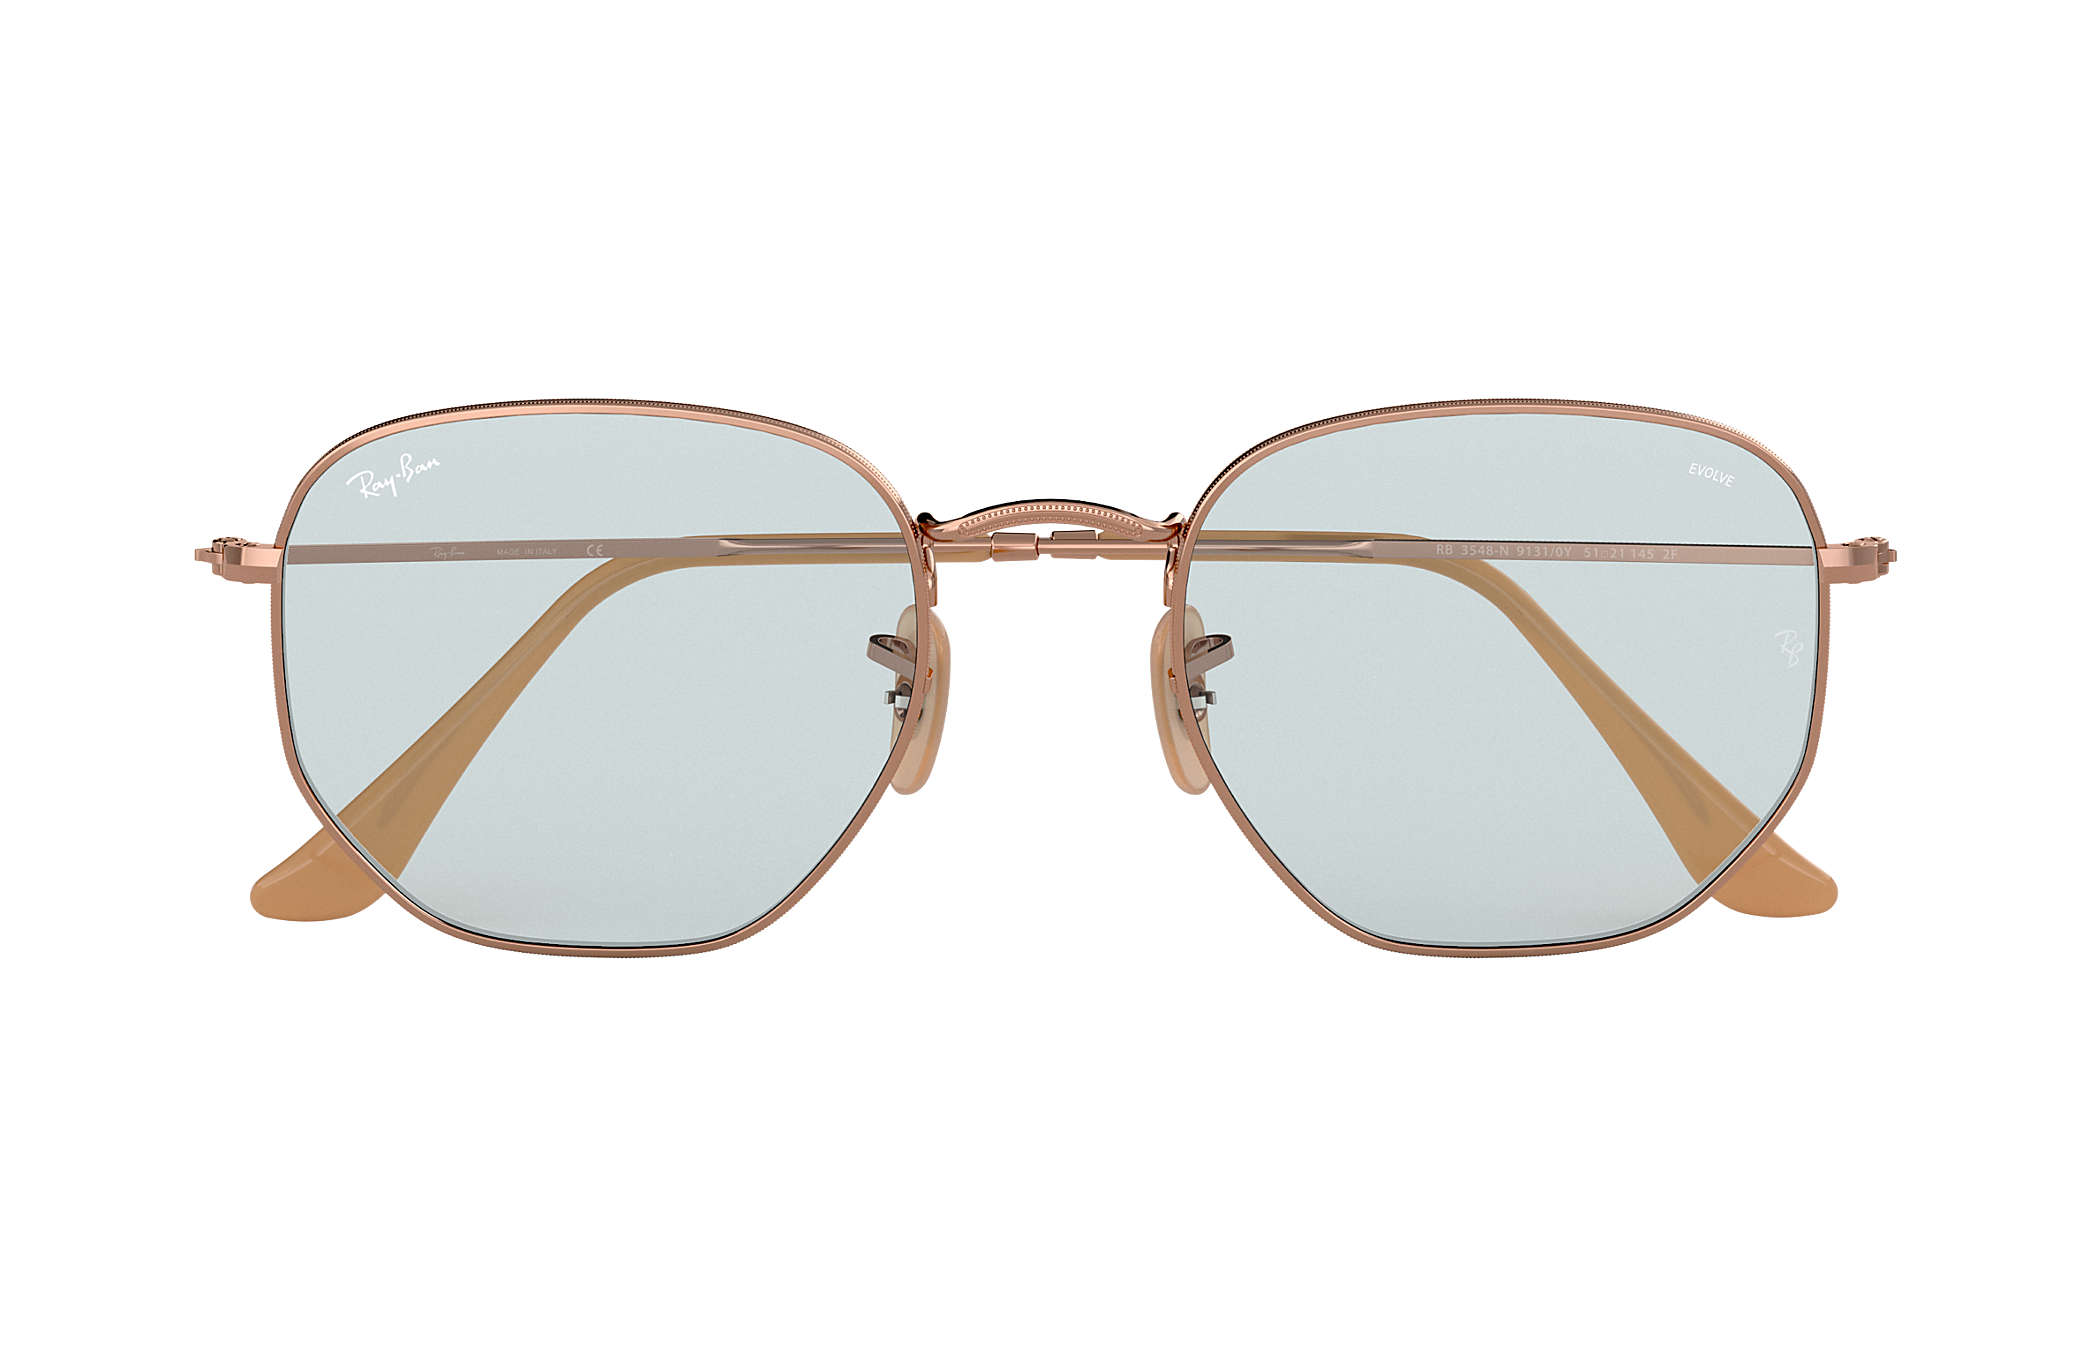 fb65edb01c0a2 Ray-Ban Hexagonal Evolve RB3548N Copper - Metal - Light Blue Lenses ...